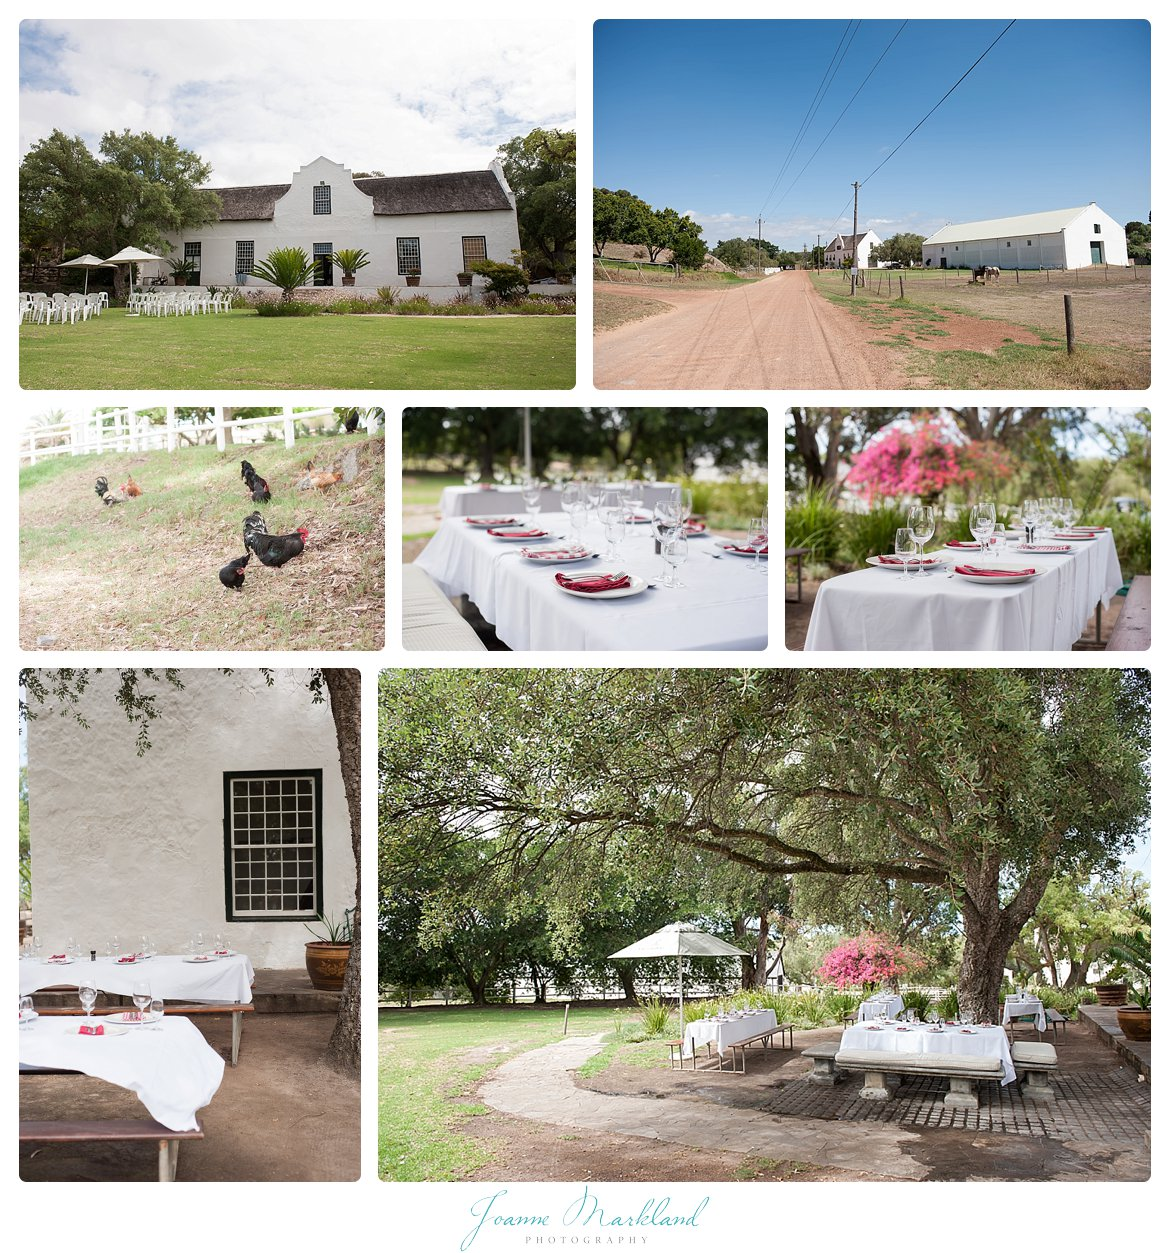 Grootepost-wedding-photography-joanne-markland-003